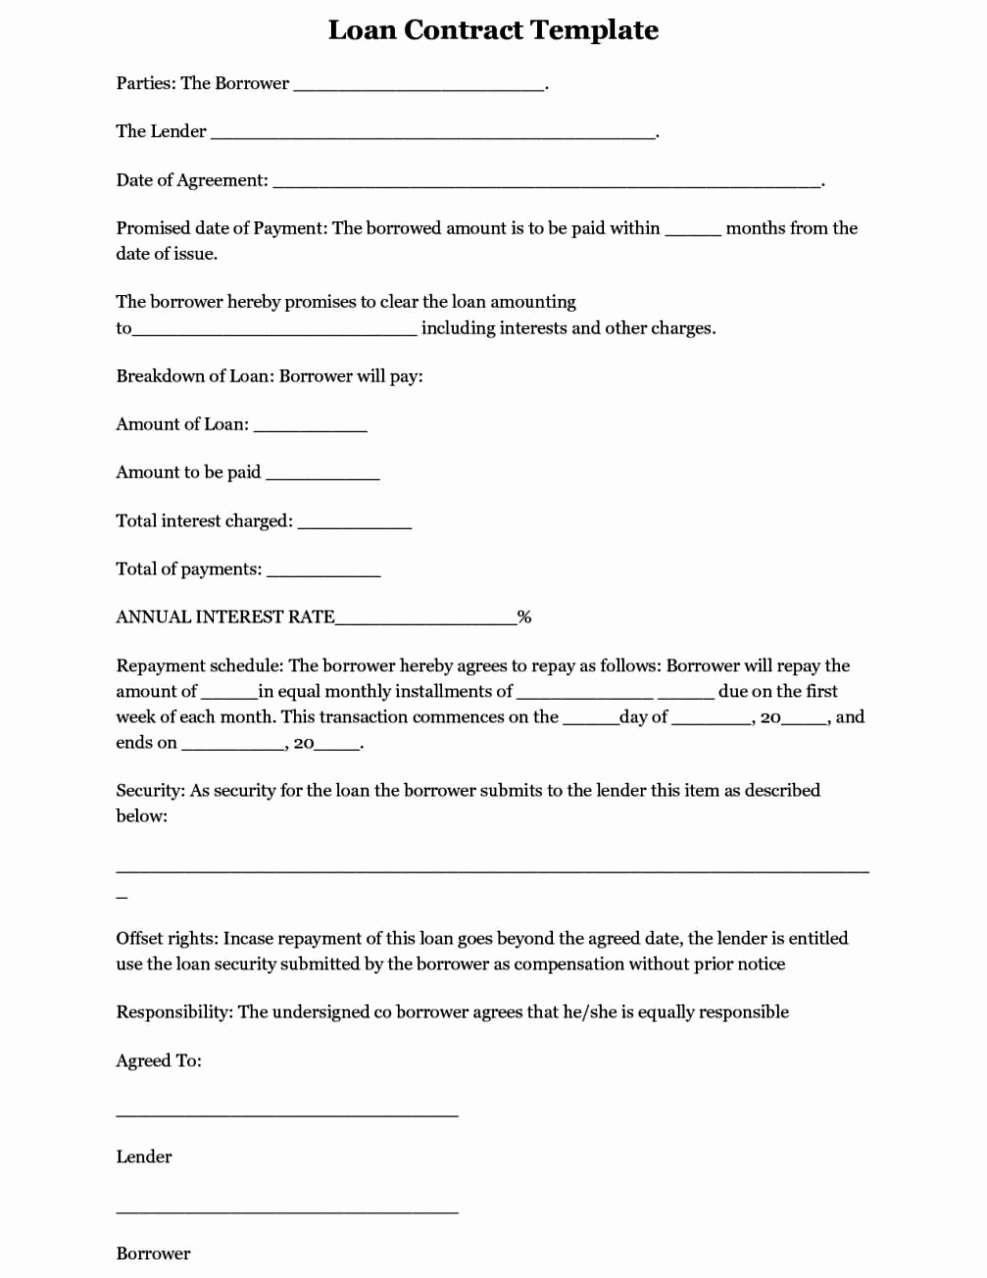 Simple Business Contract Template Inspirational Simple Business Contract Template Sampletemplatess